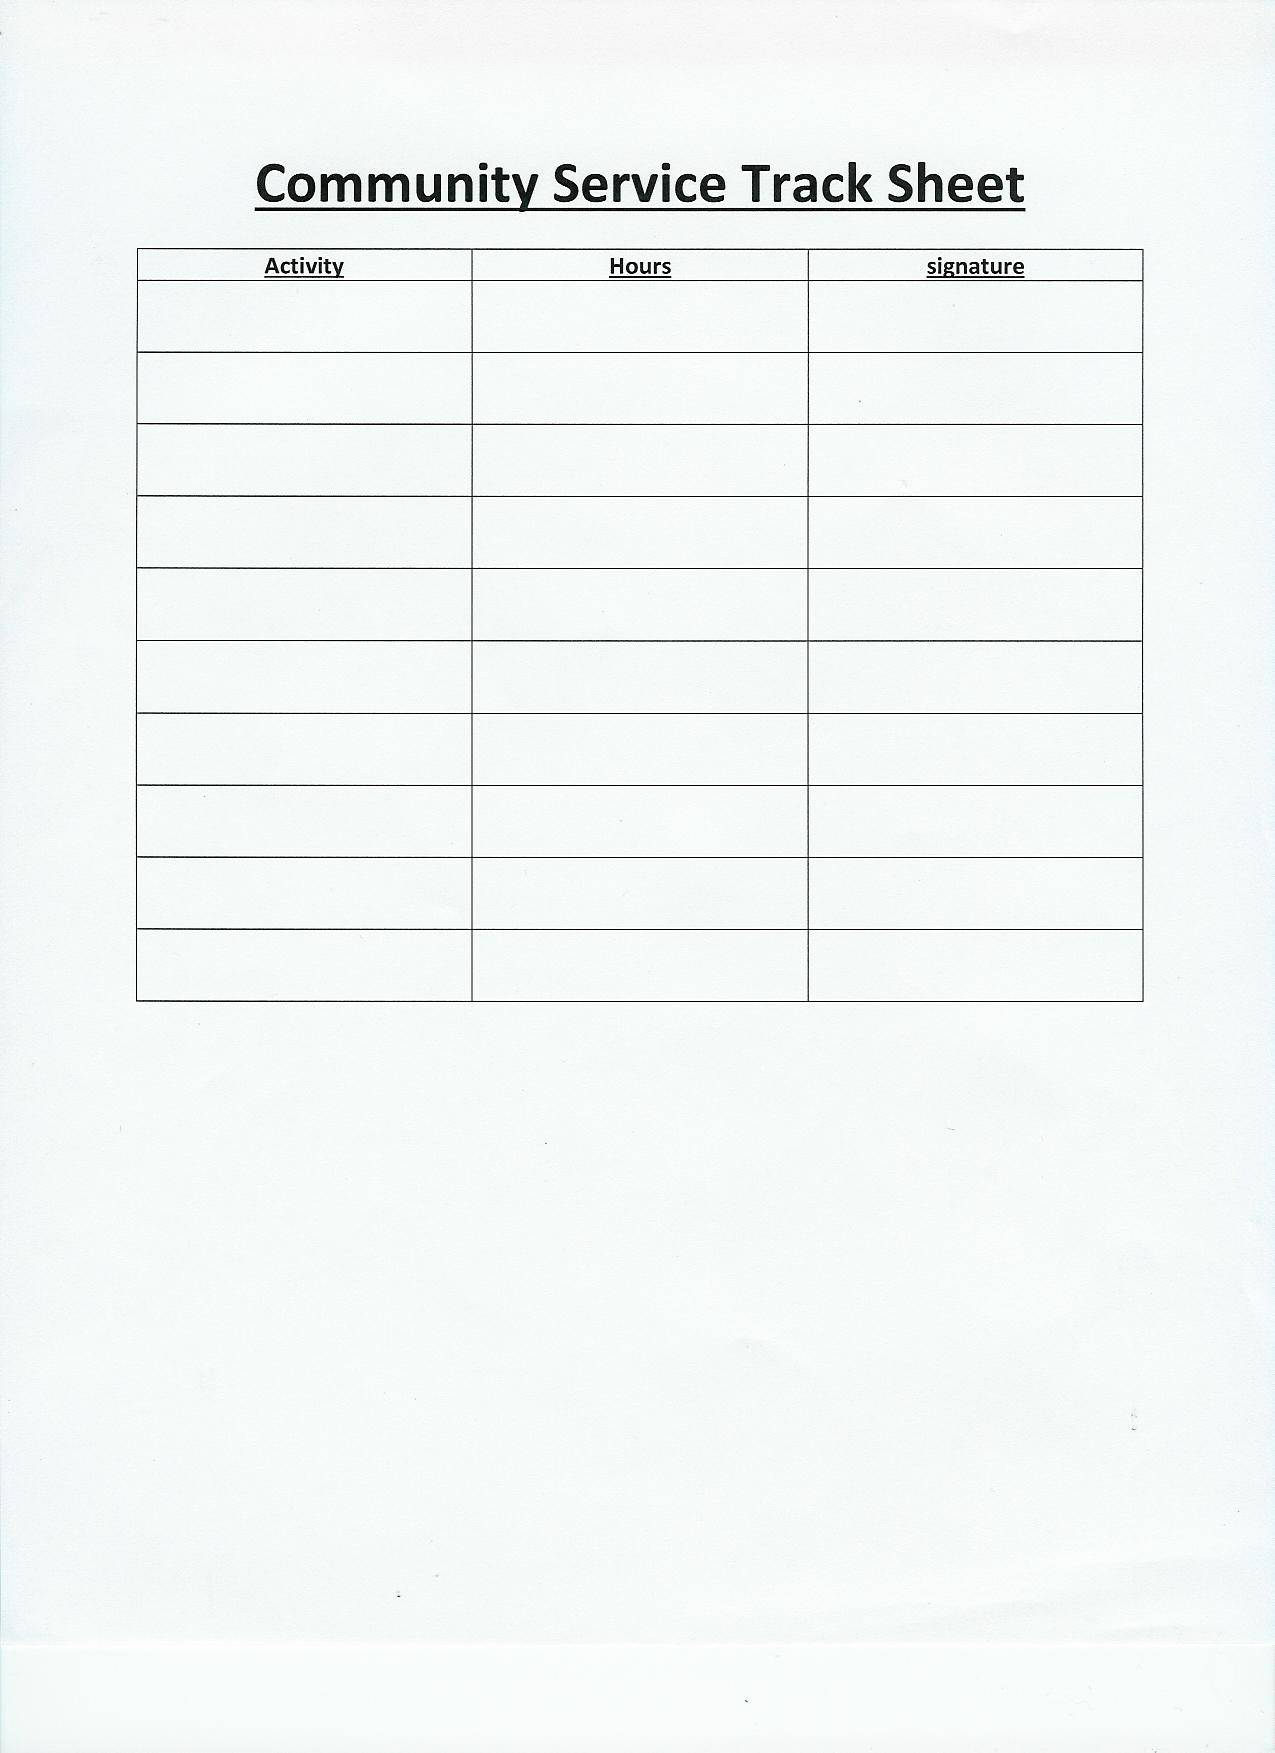 Community Service Hours Worksheet Free Worksheets Library